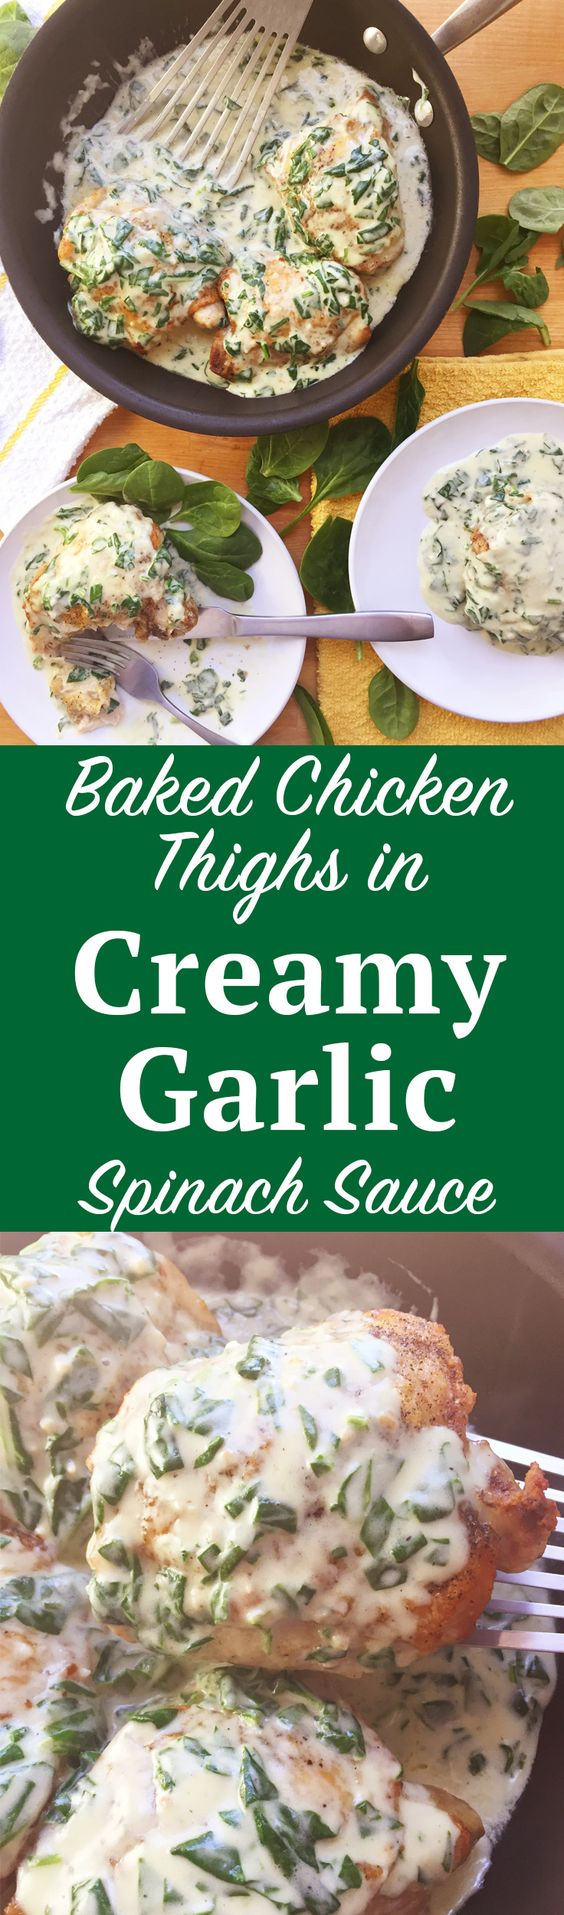 Baked Chicken Thighs with Creamy Garlic Spinach Sauce. A gourmet dinner in under 30 minutes? It's possible with this Baked Chicken Thigh recipe with Creamy Garlic Spinach Sauce. Click through for the instructions!   SeasonlyCreations.com   @Seasonlyblog